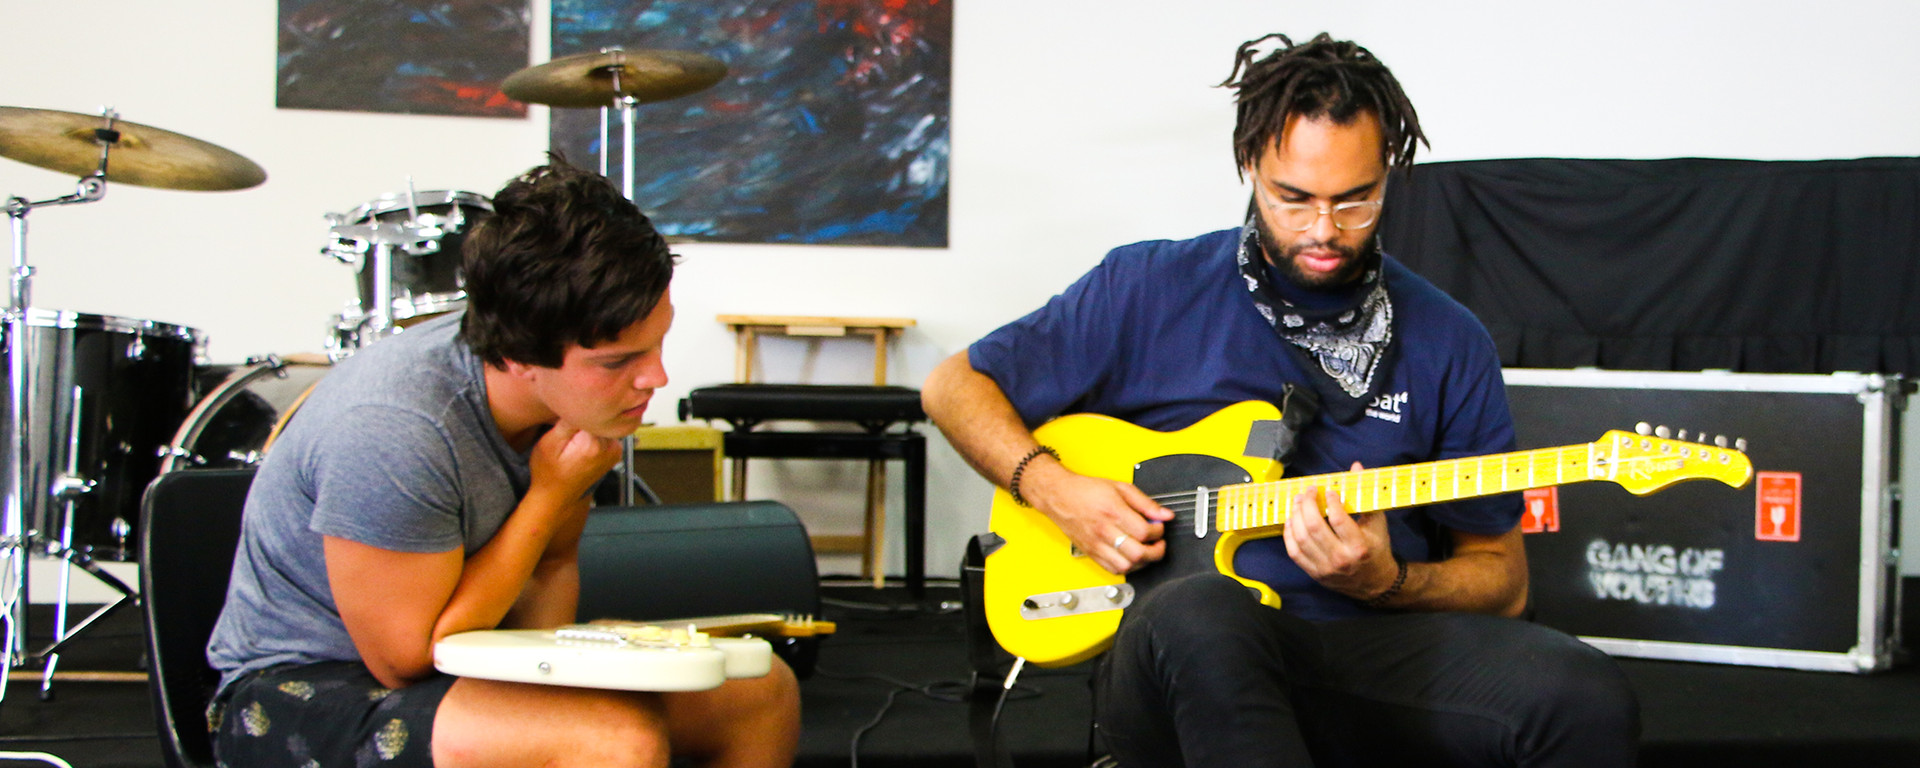 Joji (Gang of Youths) masterclass